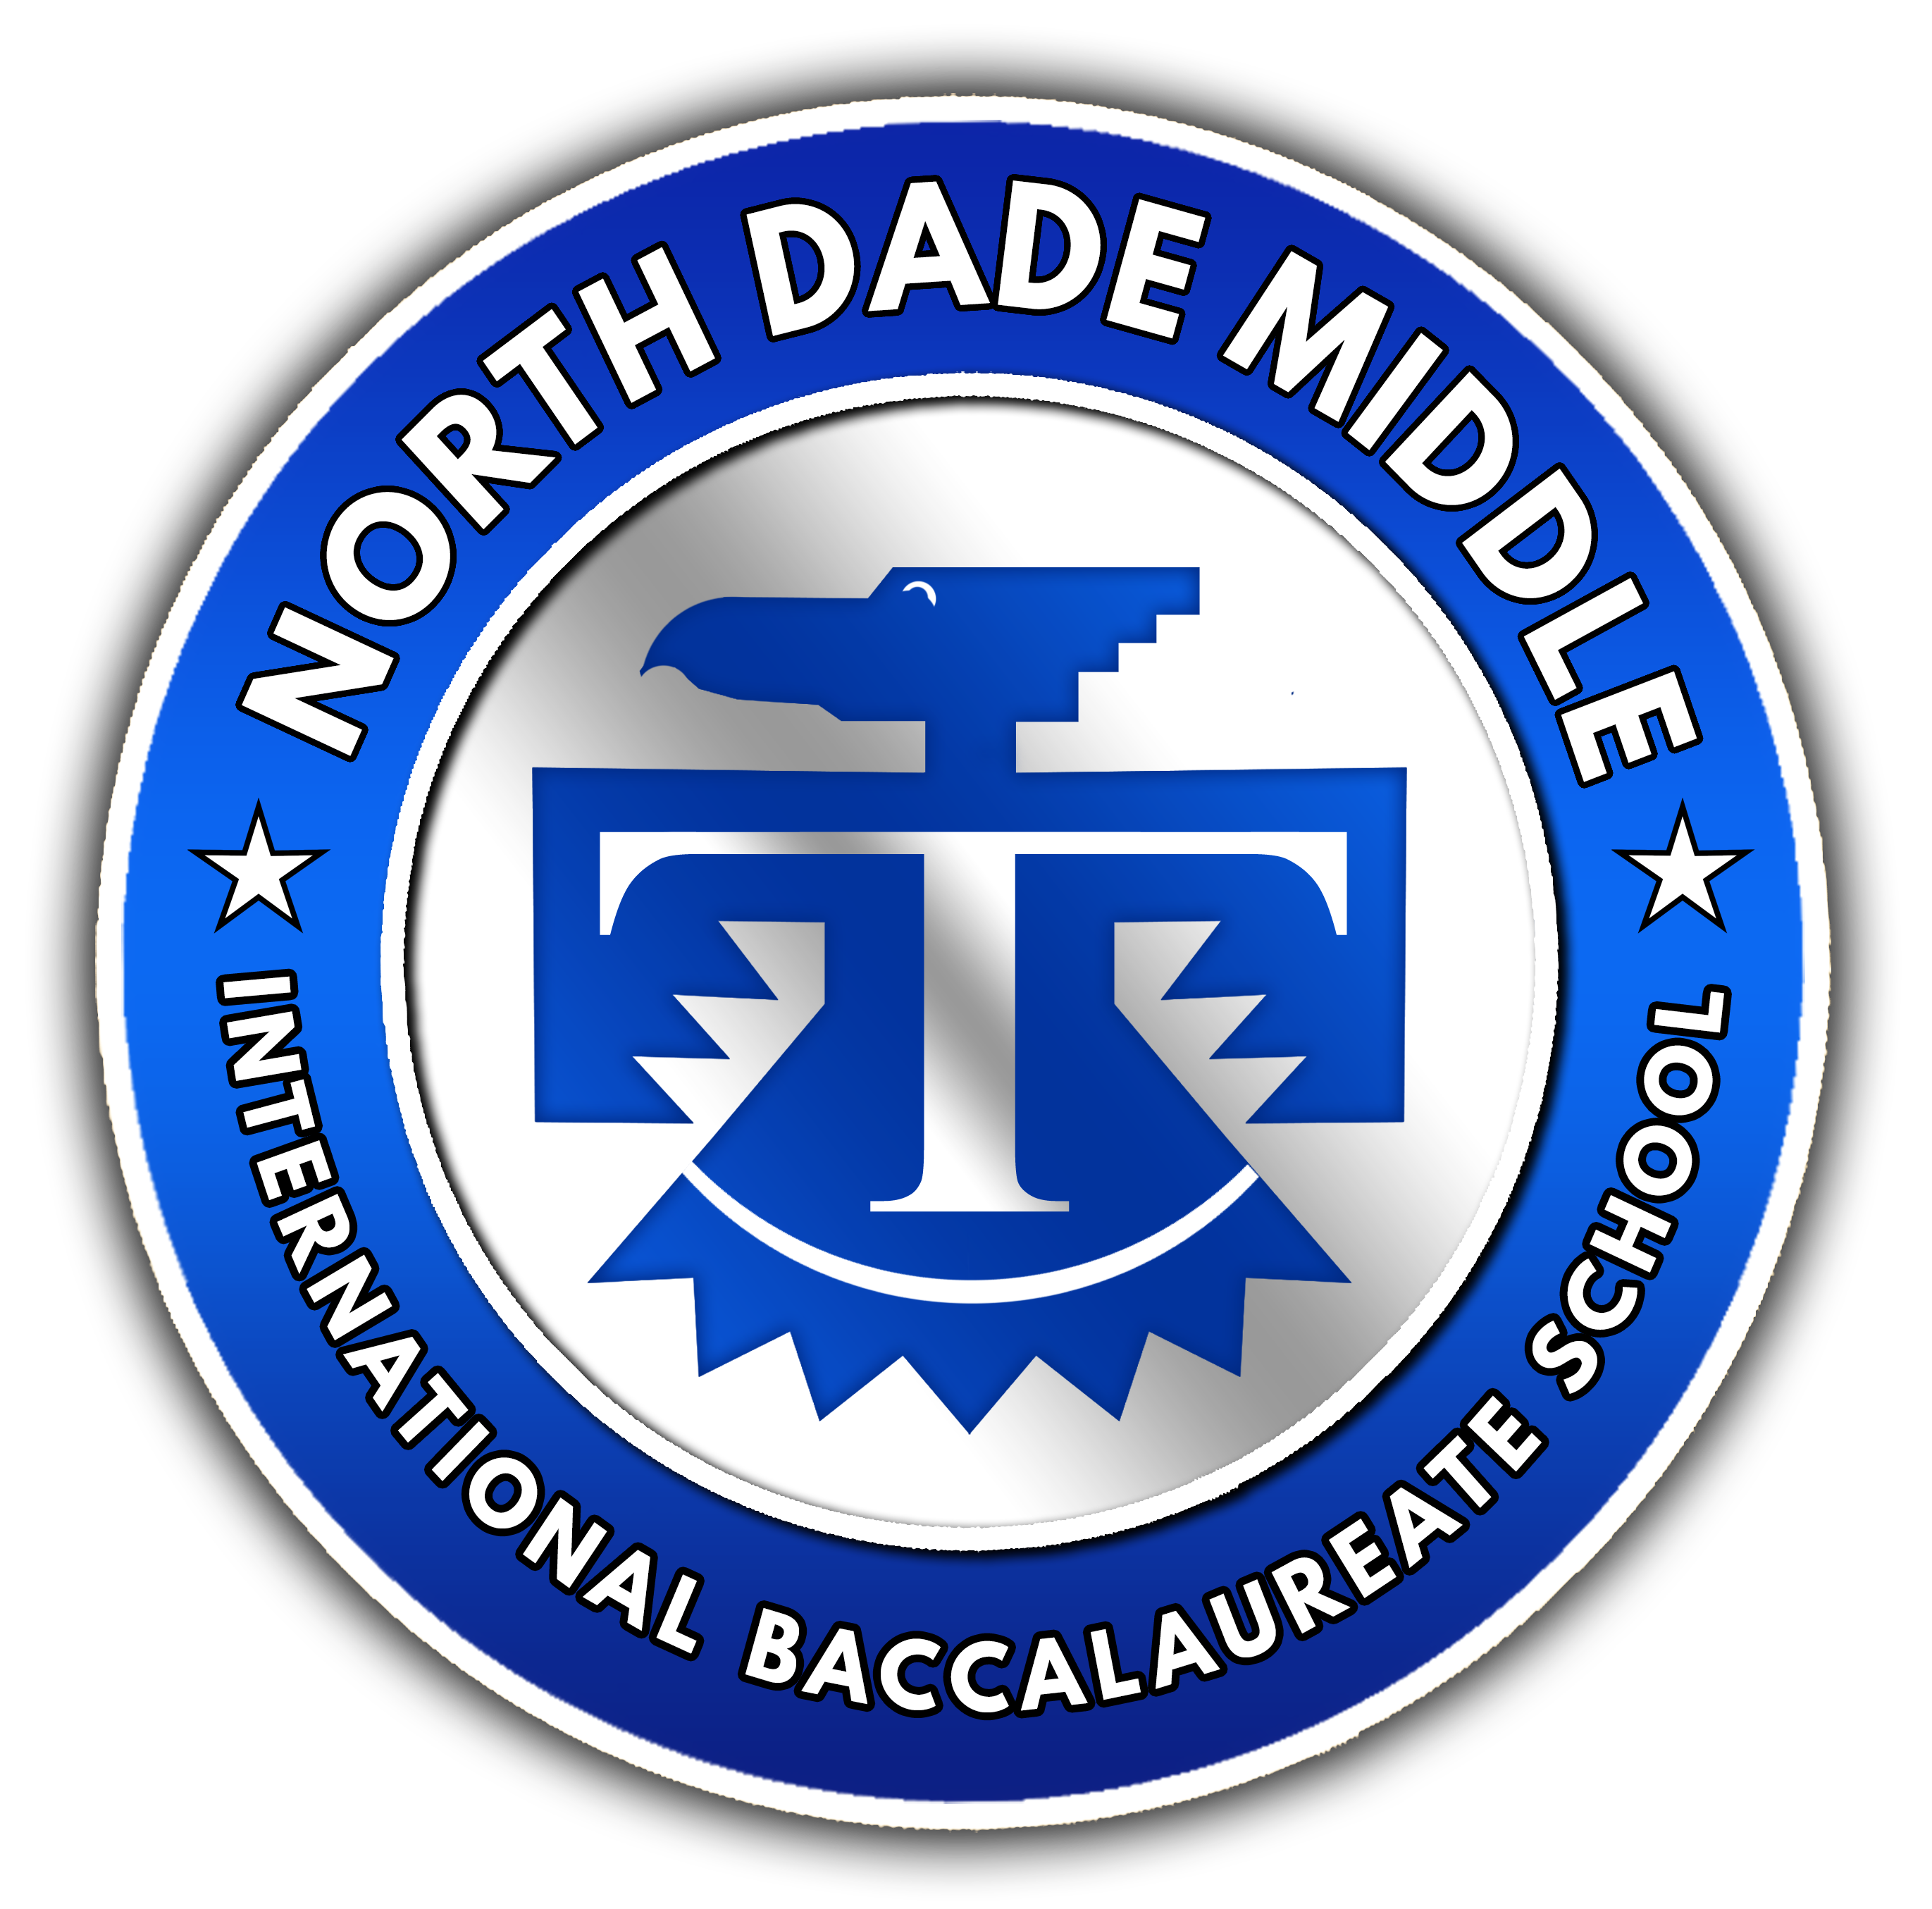 north dade middle round seal